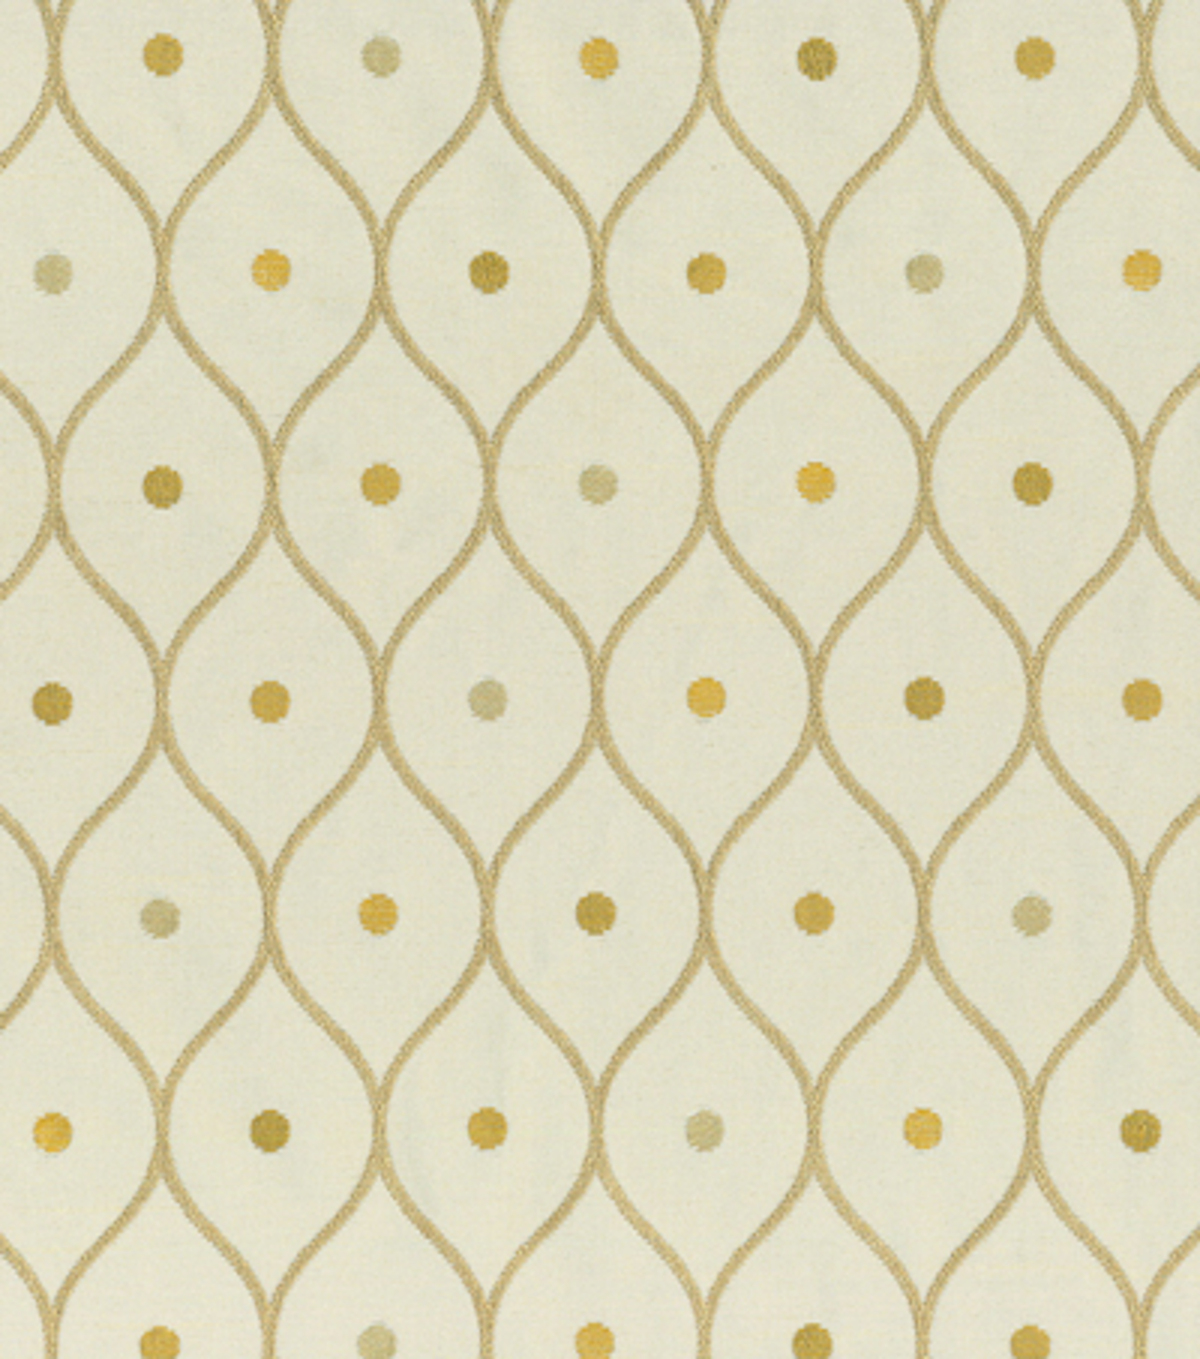 Home Decor 8\u0022x8\u0022 Fabric Swatch-Richloom Studio Tacking Wheat